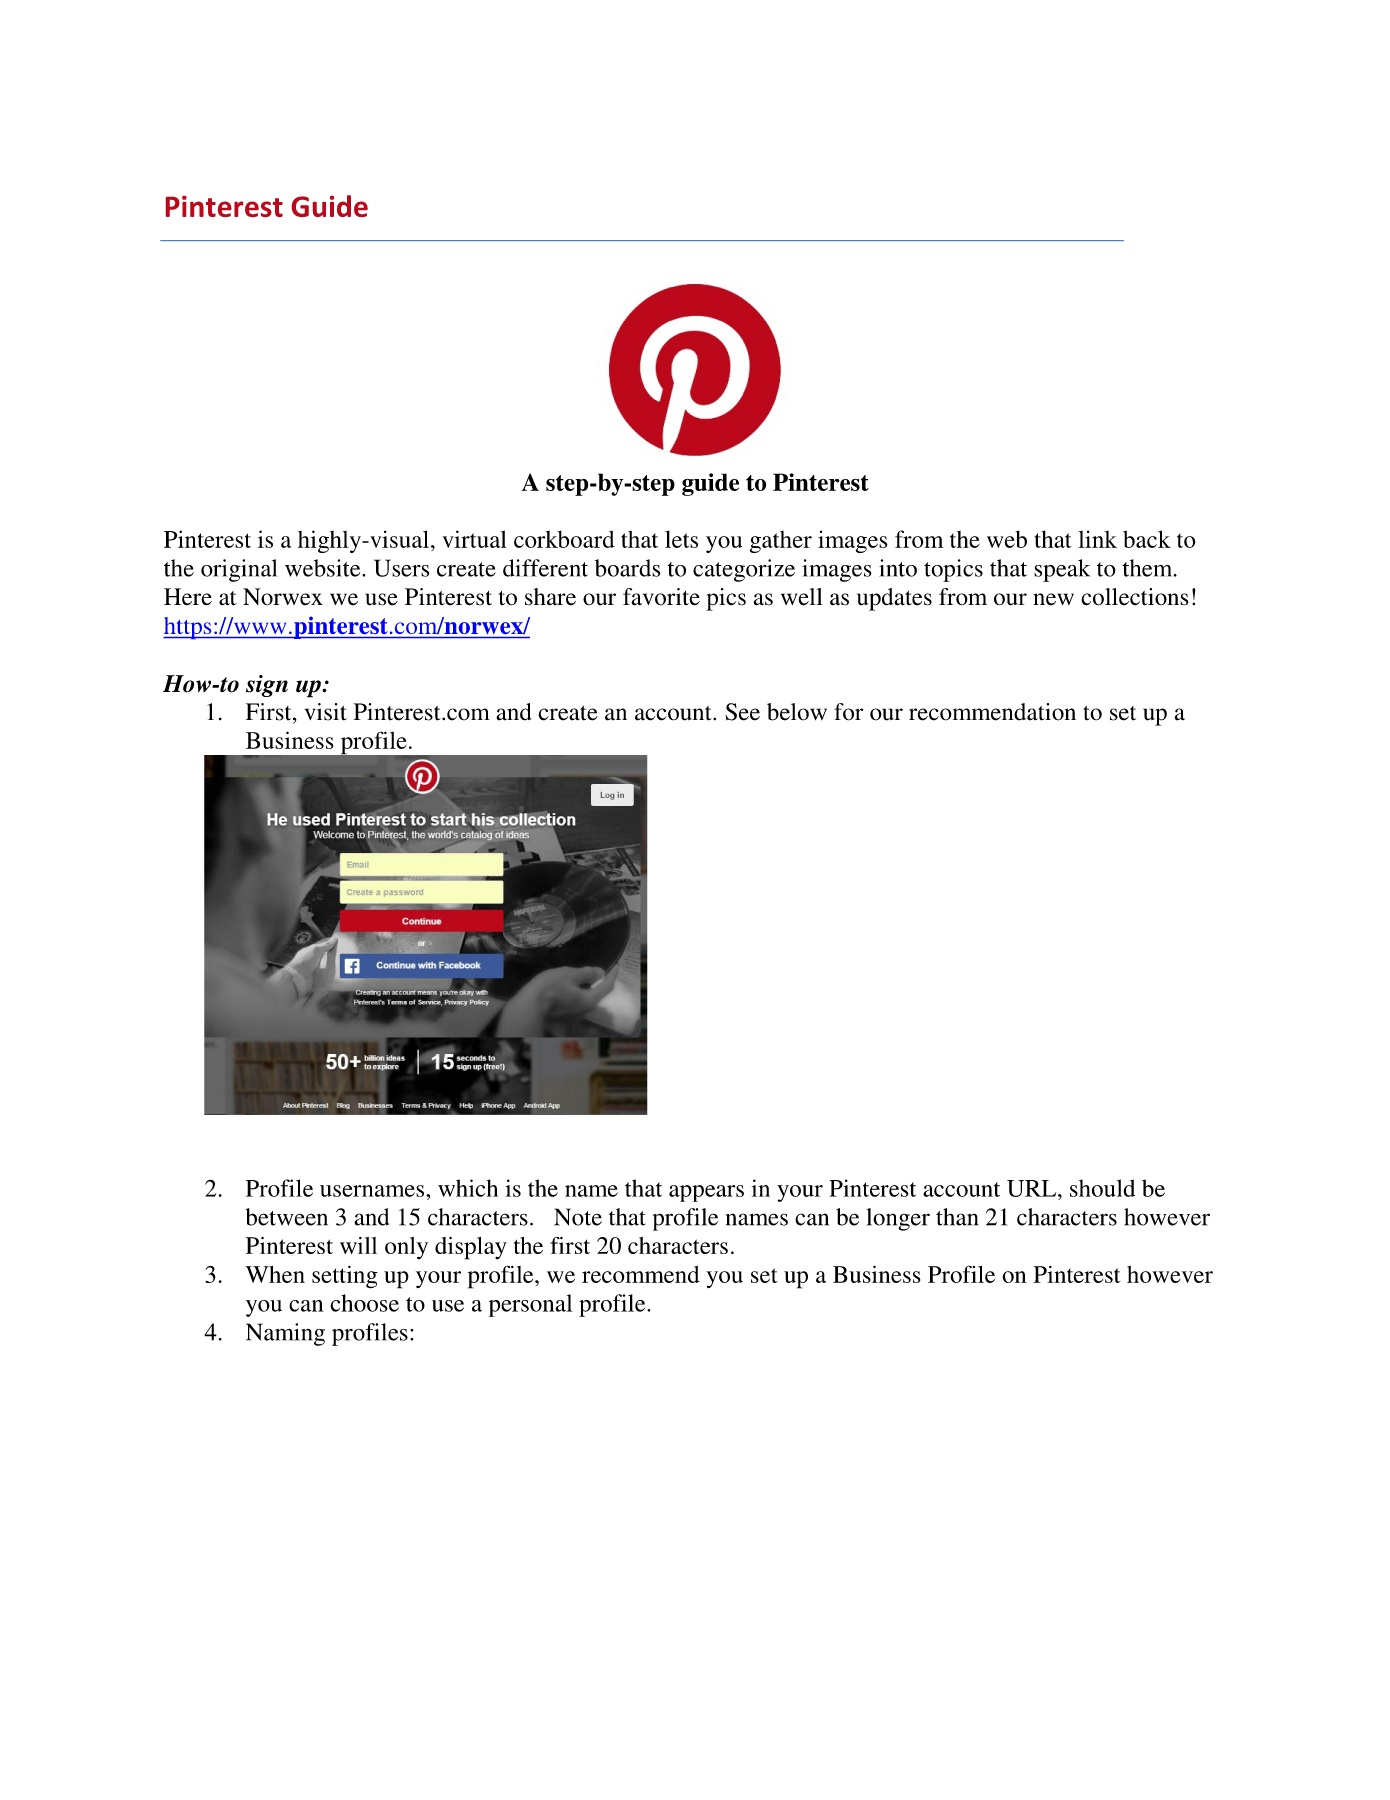 Norwex Pinterest Guide Instructions Pages 1 - 5 - Text Version | AnyFlip